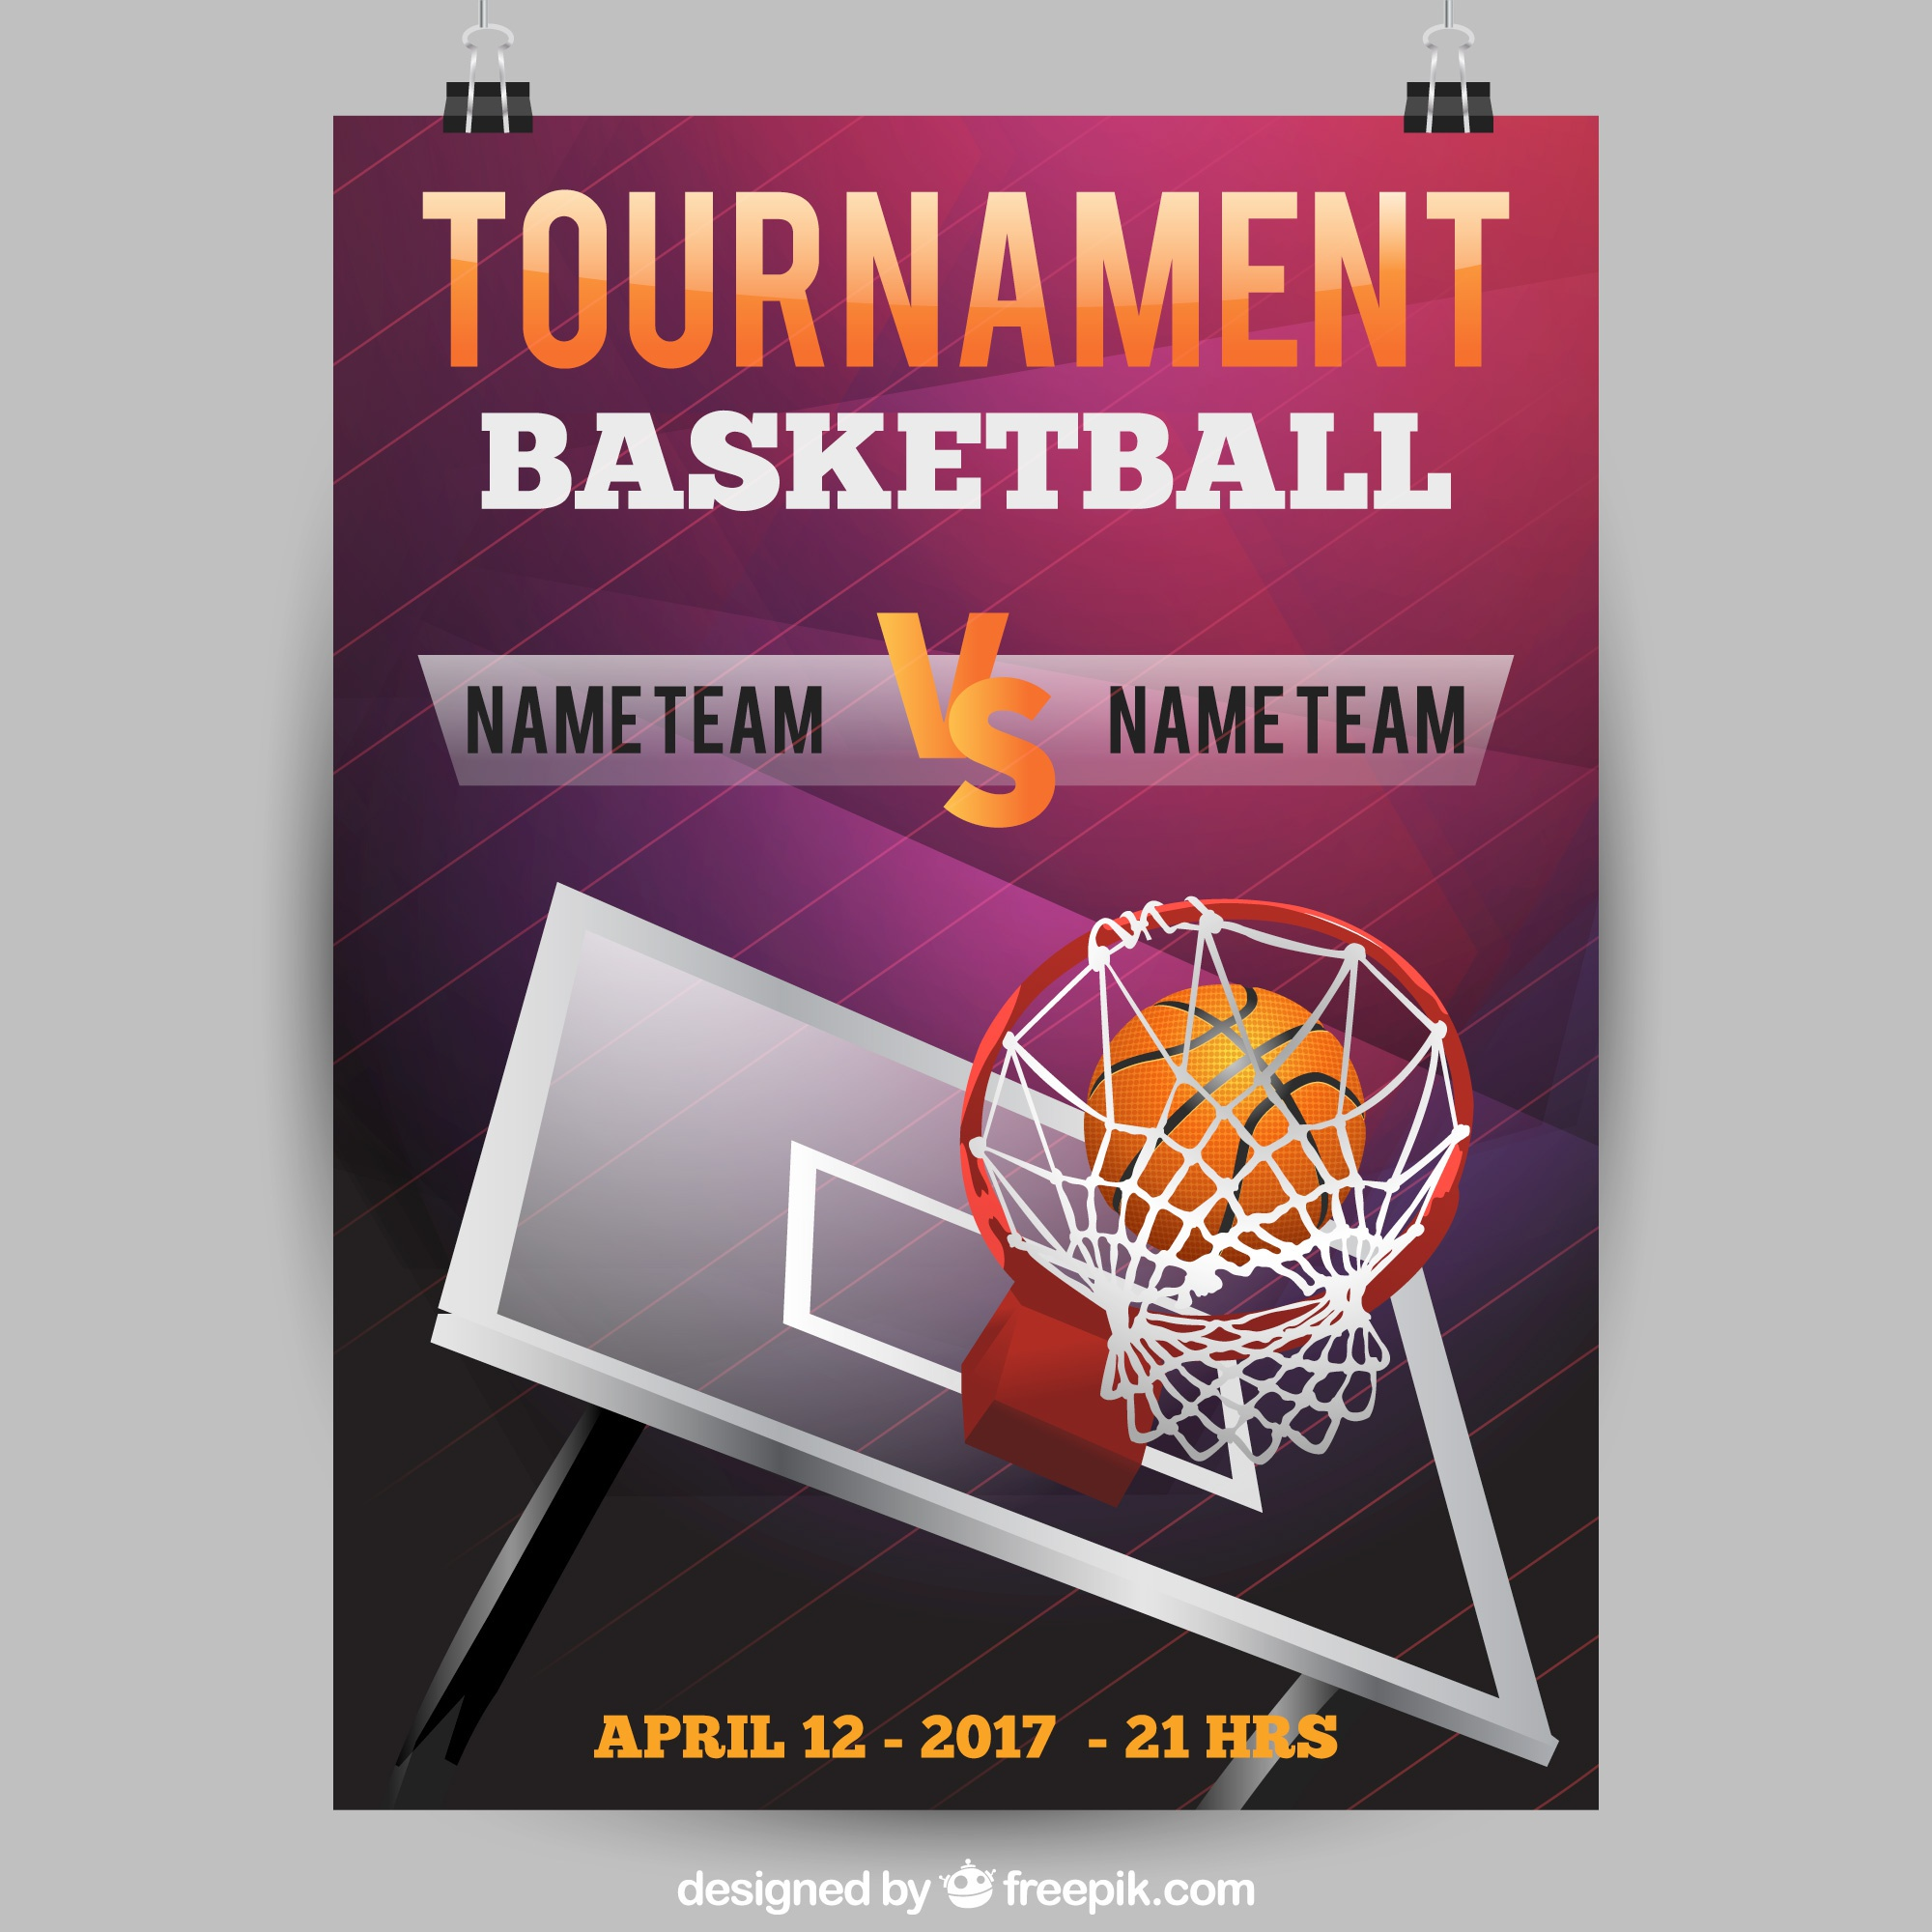 Basketball-Turnier Poster